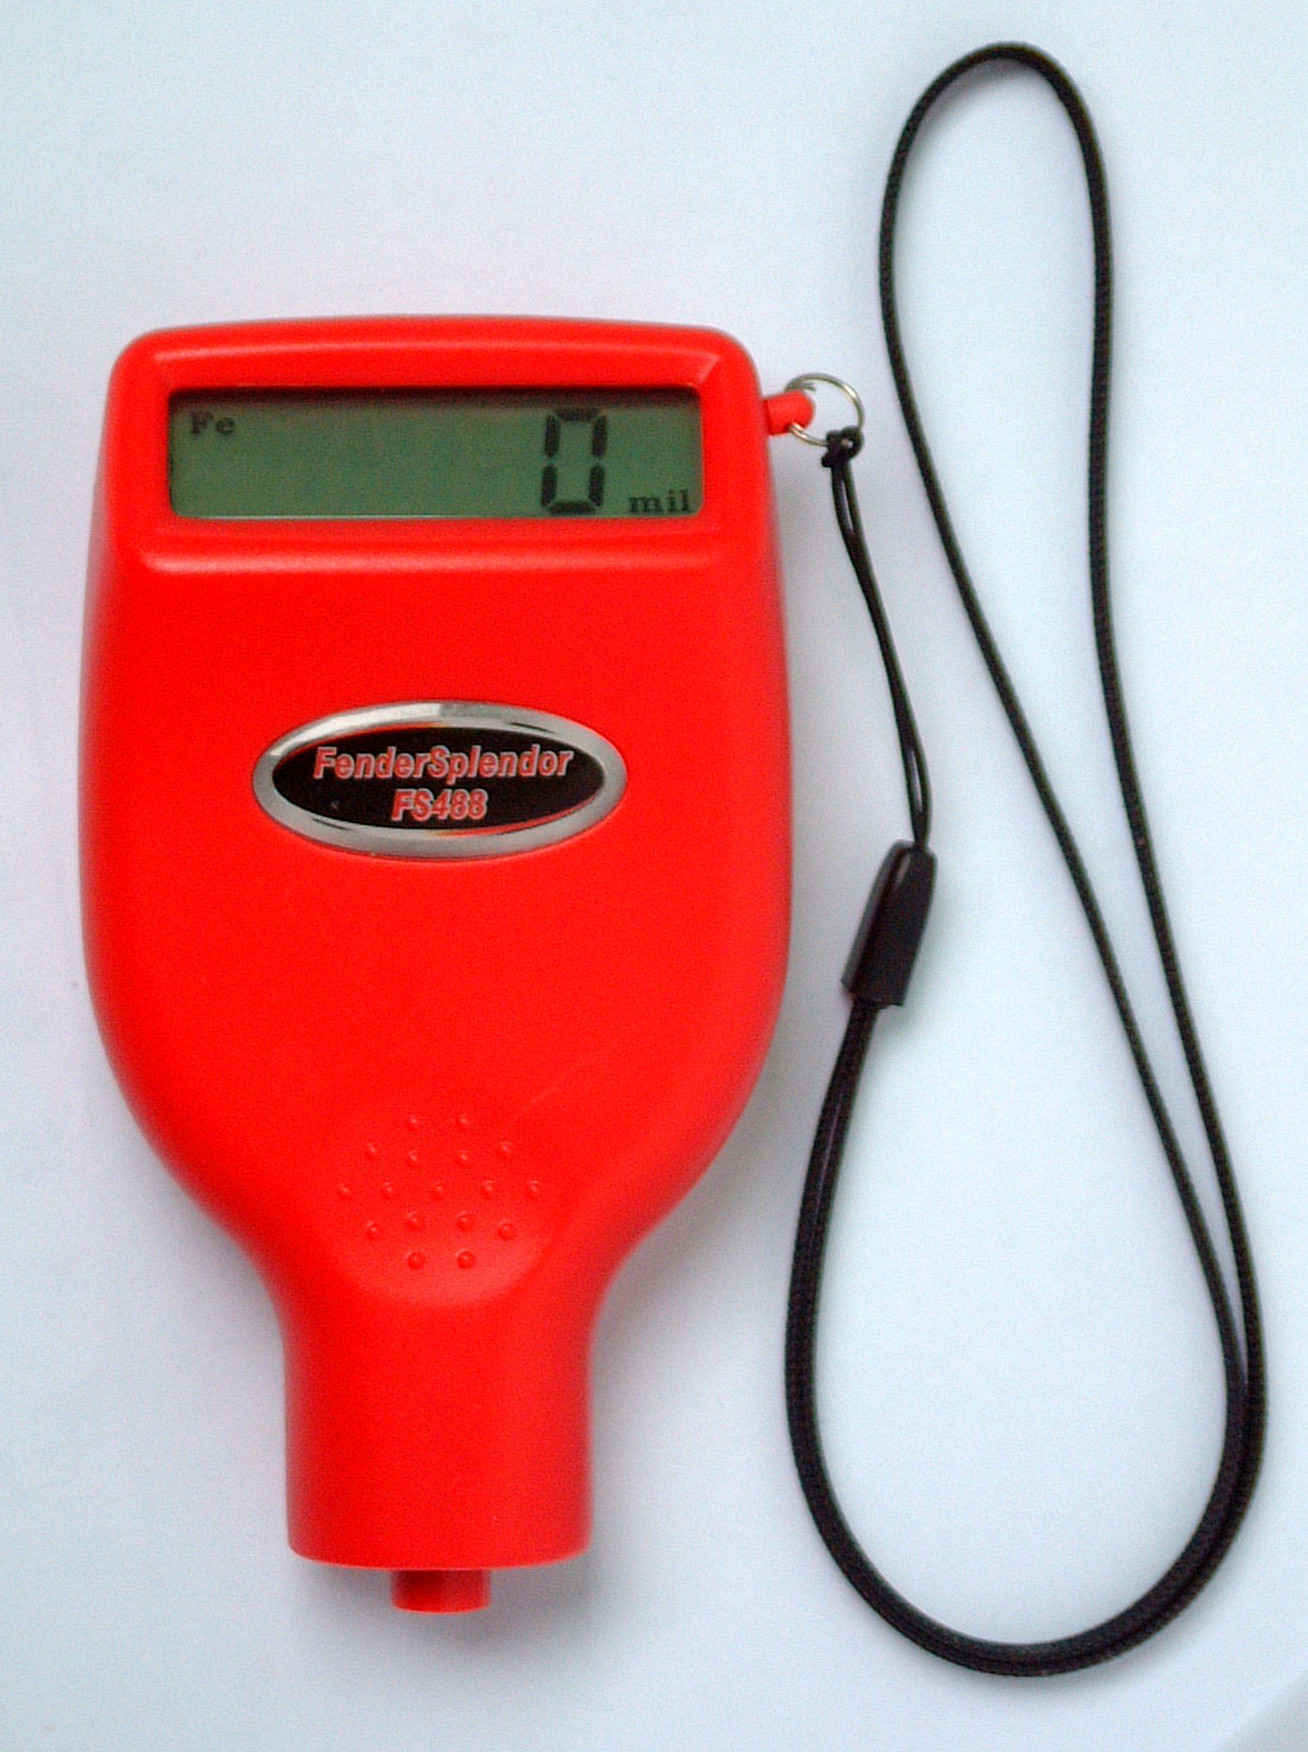 car dealers stun paint meter manufacturer with record